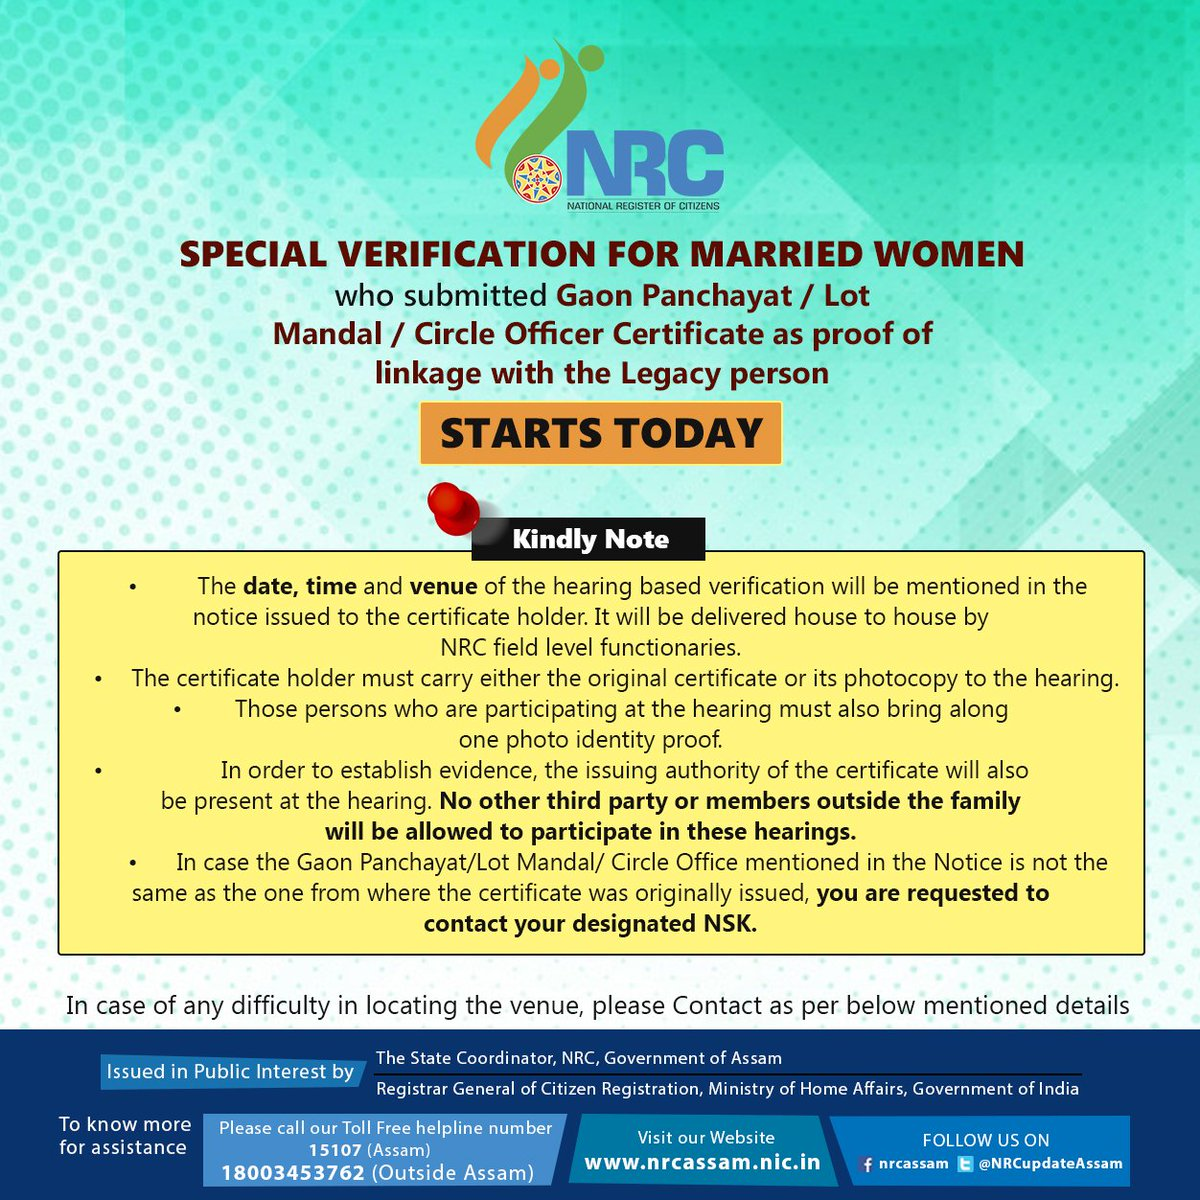 NRC Updation Assam on Twitter: